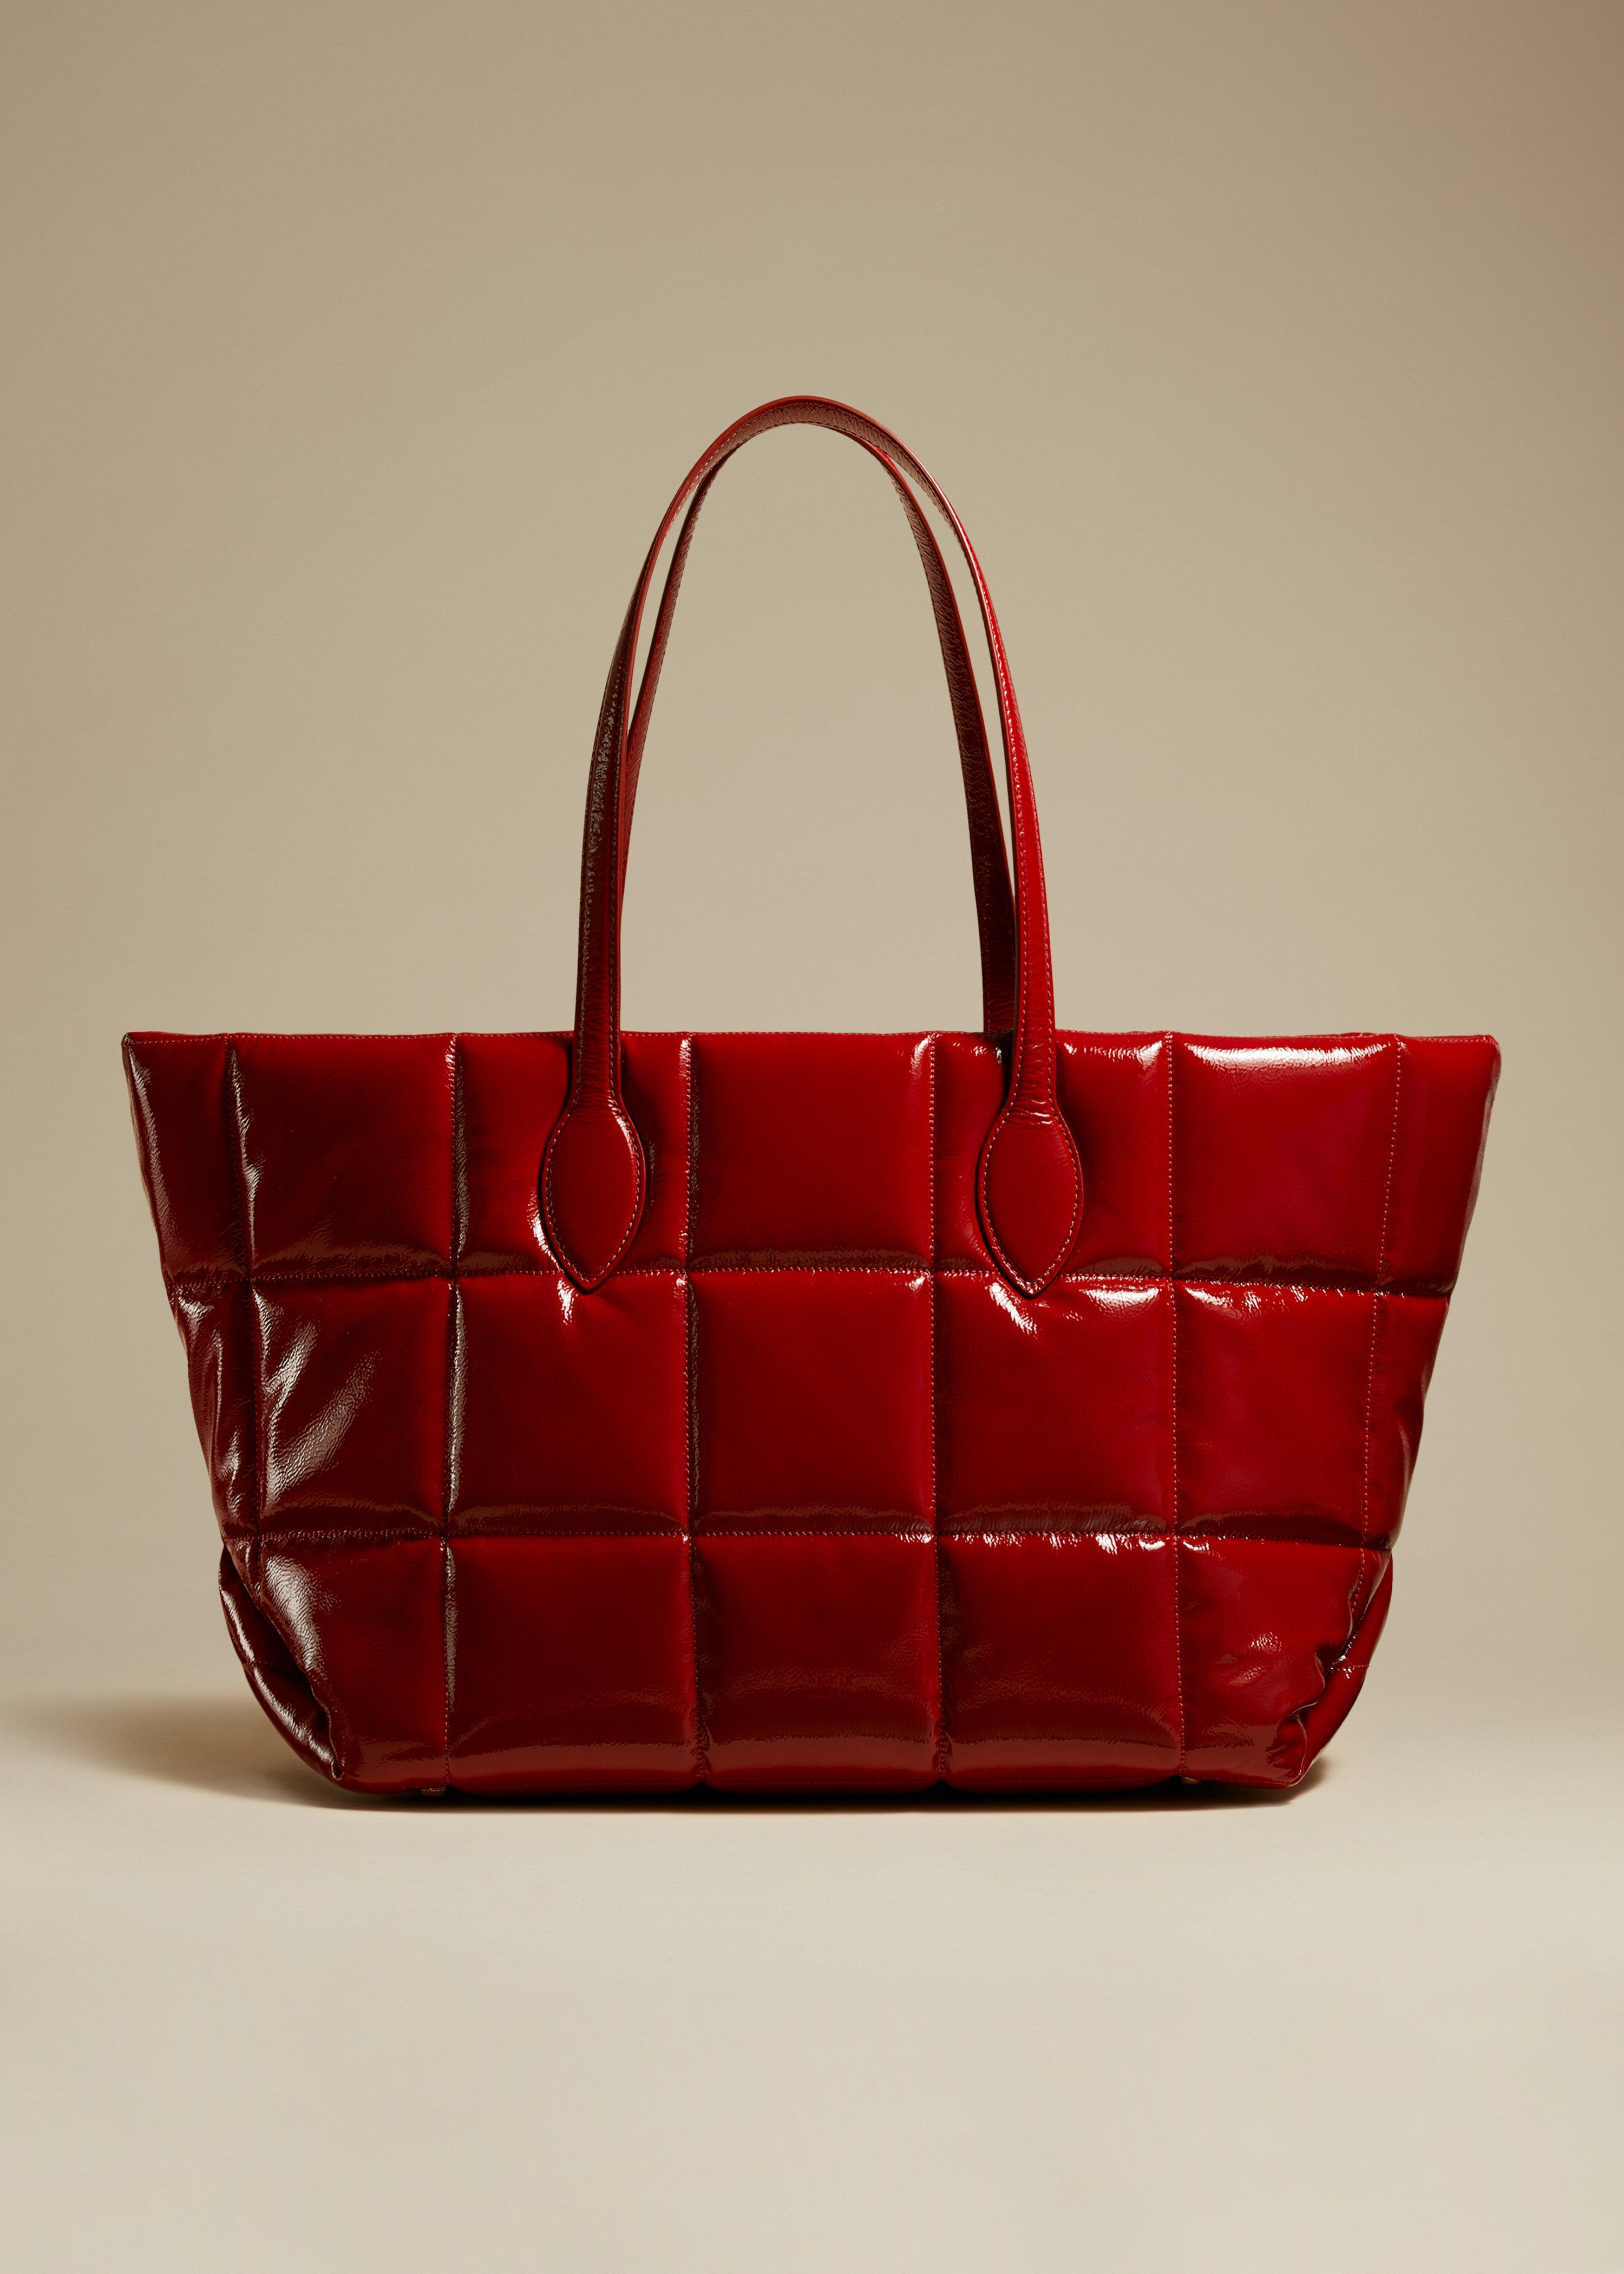 The Florence Quilted Tote in Fire Red Patent Leather